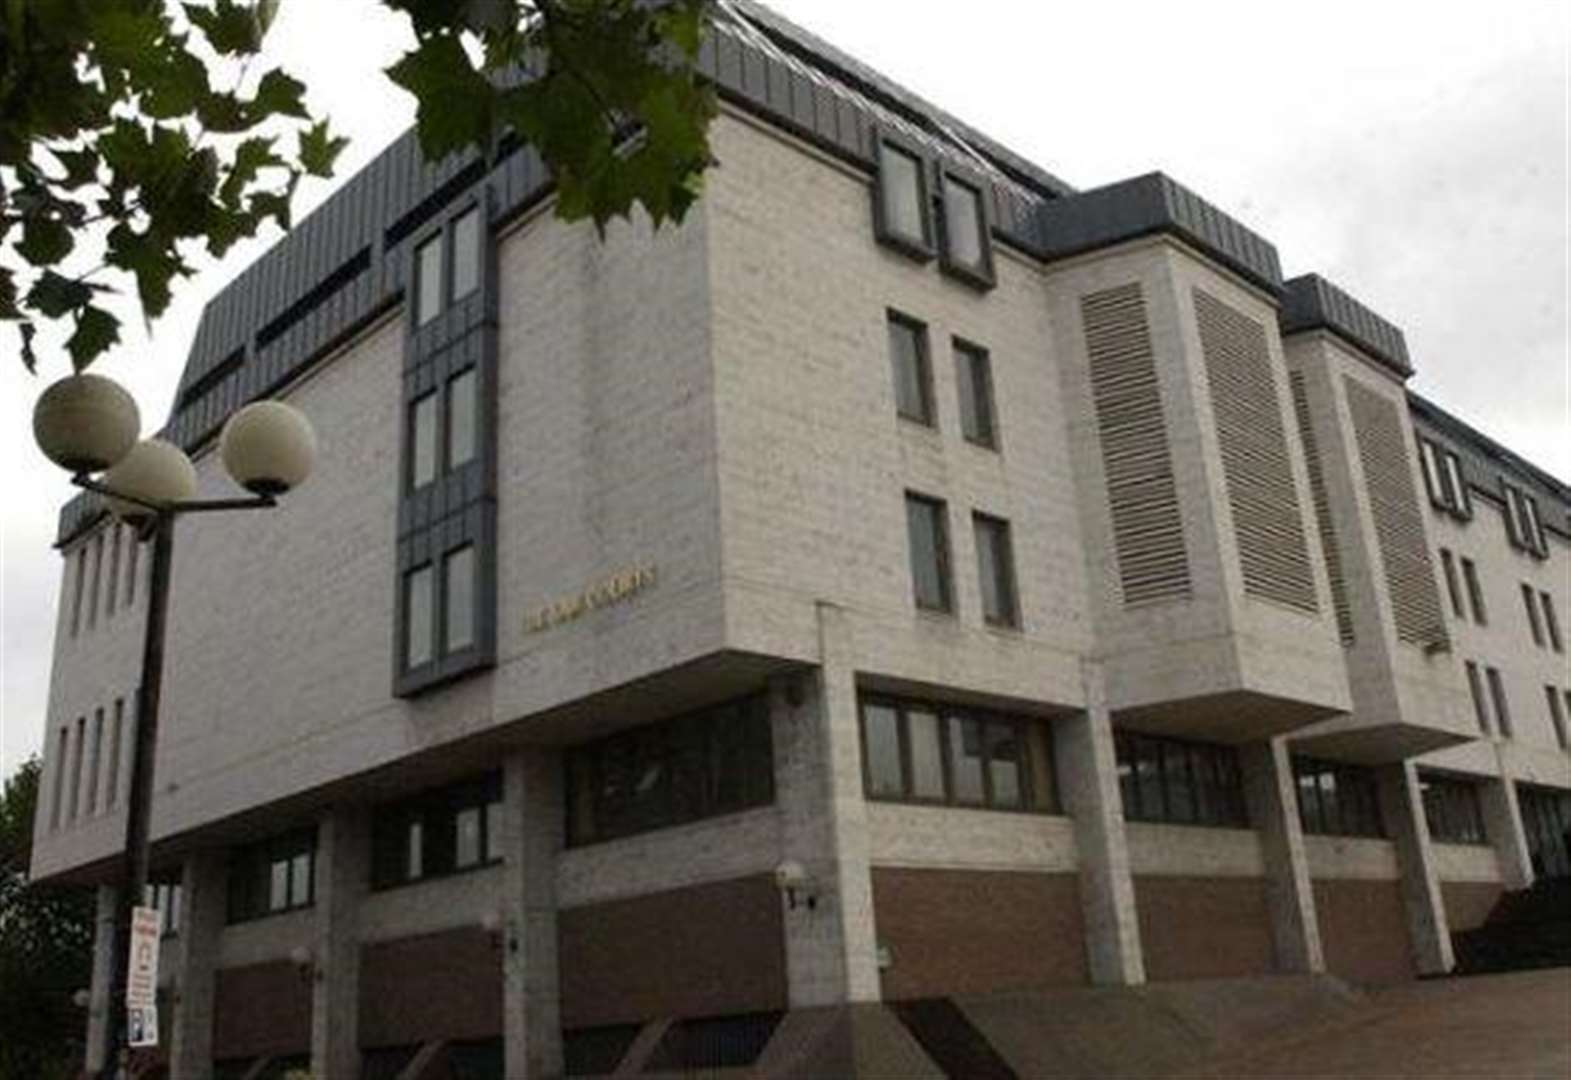 Fraudster netted £1.3 million